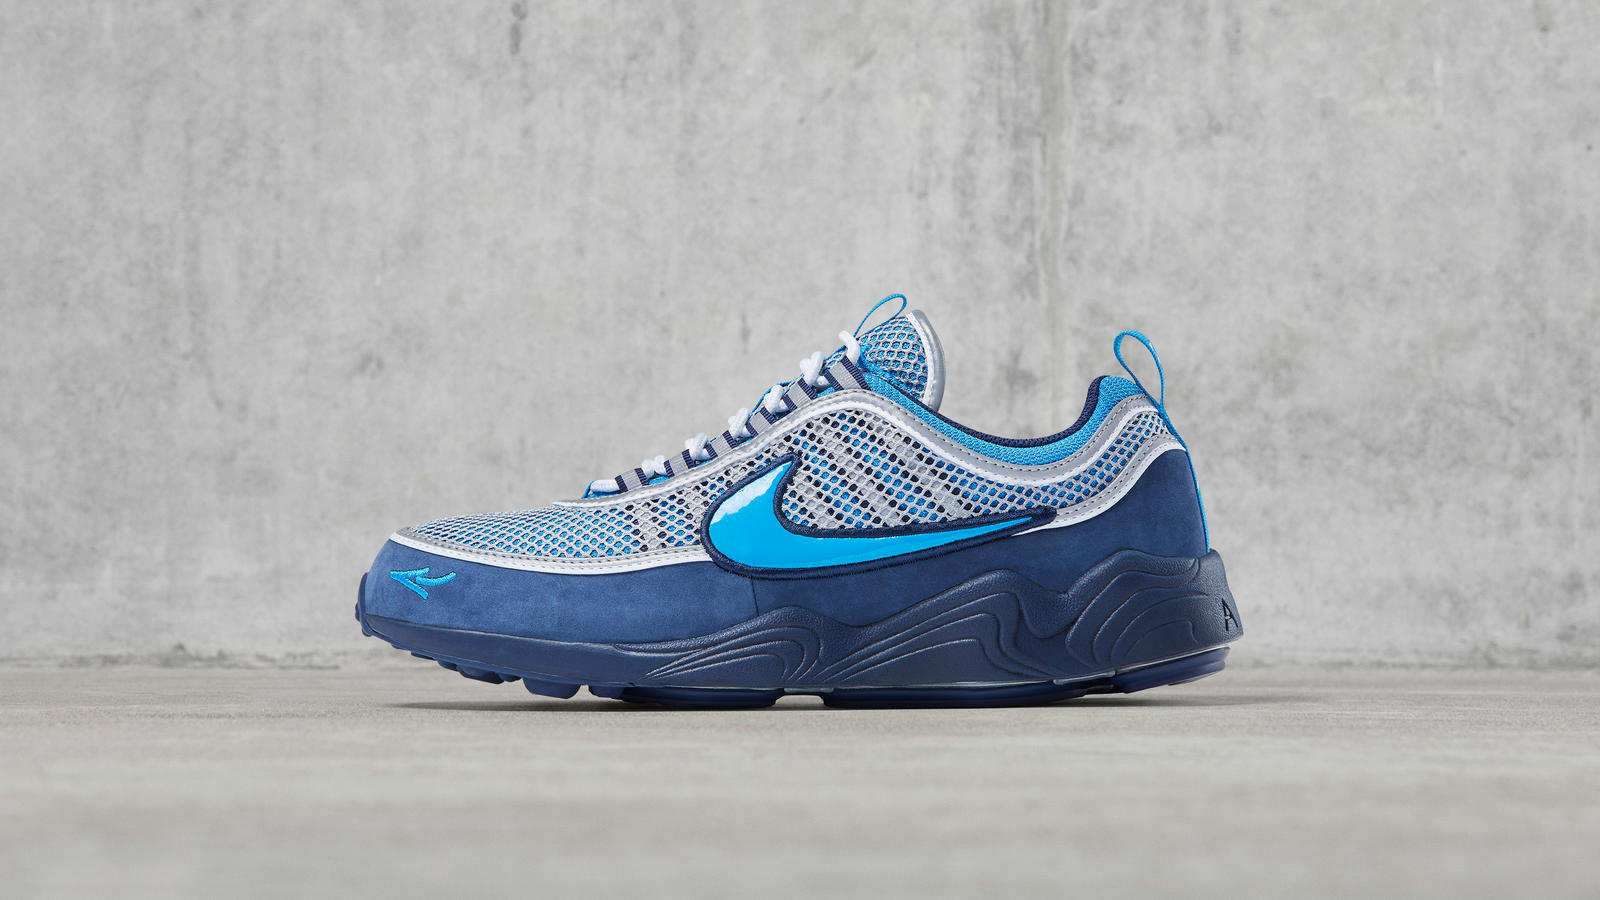 Nike Air Zoom Spiridon '16 x STASH 2